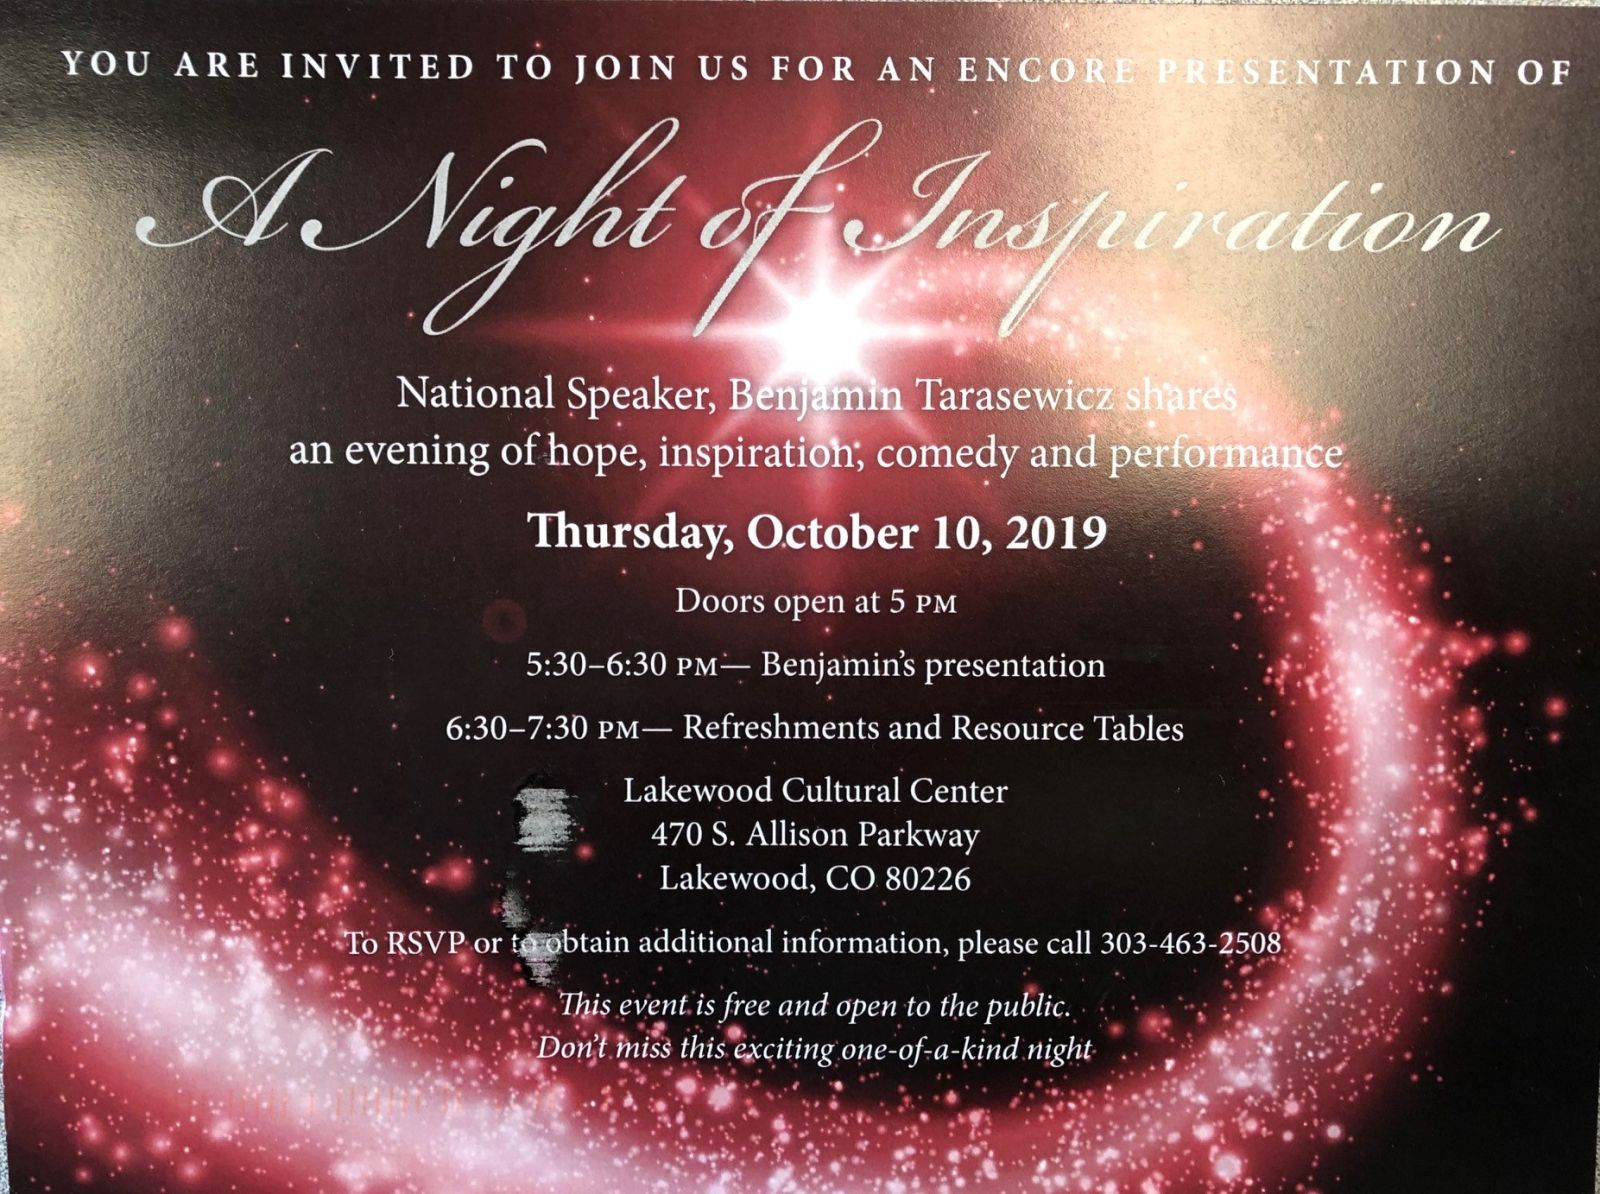 A Night of Inspiration  National speaker Benjamin Tarasewicz shares an evening of hope, inspiration, comedy, and performance. 5:30 – 6:30 – Benjamin's presentation 6:30-7:30 refreshments and resource tables  Lakewood Cultural Center 470 S. Allison Parkway Lakewood, CO 80226 RSVP or more info: 303-463-2508 Event is free and open to the public.